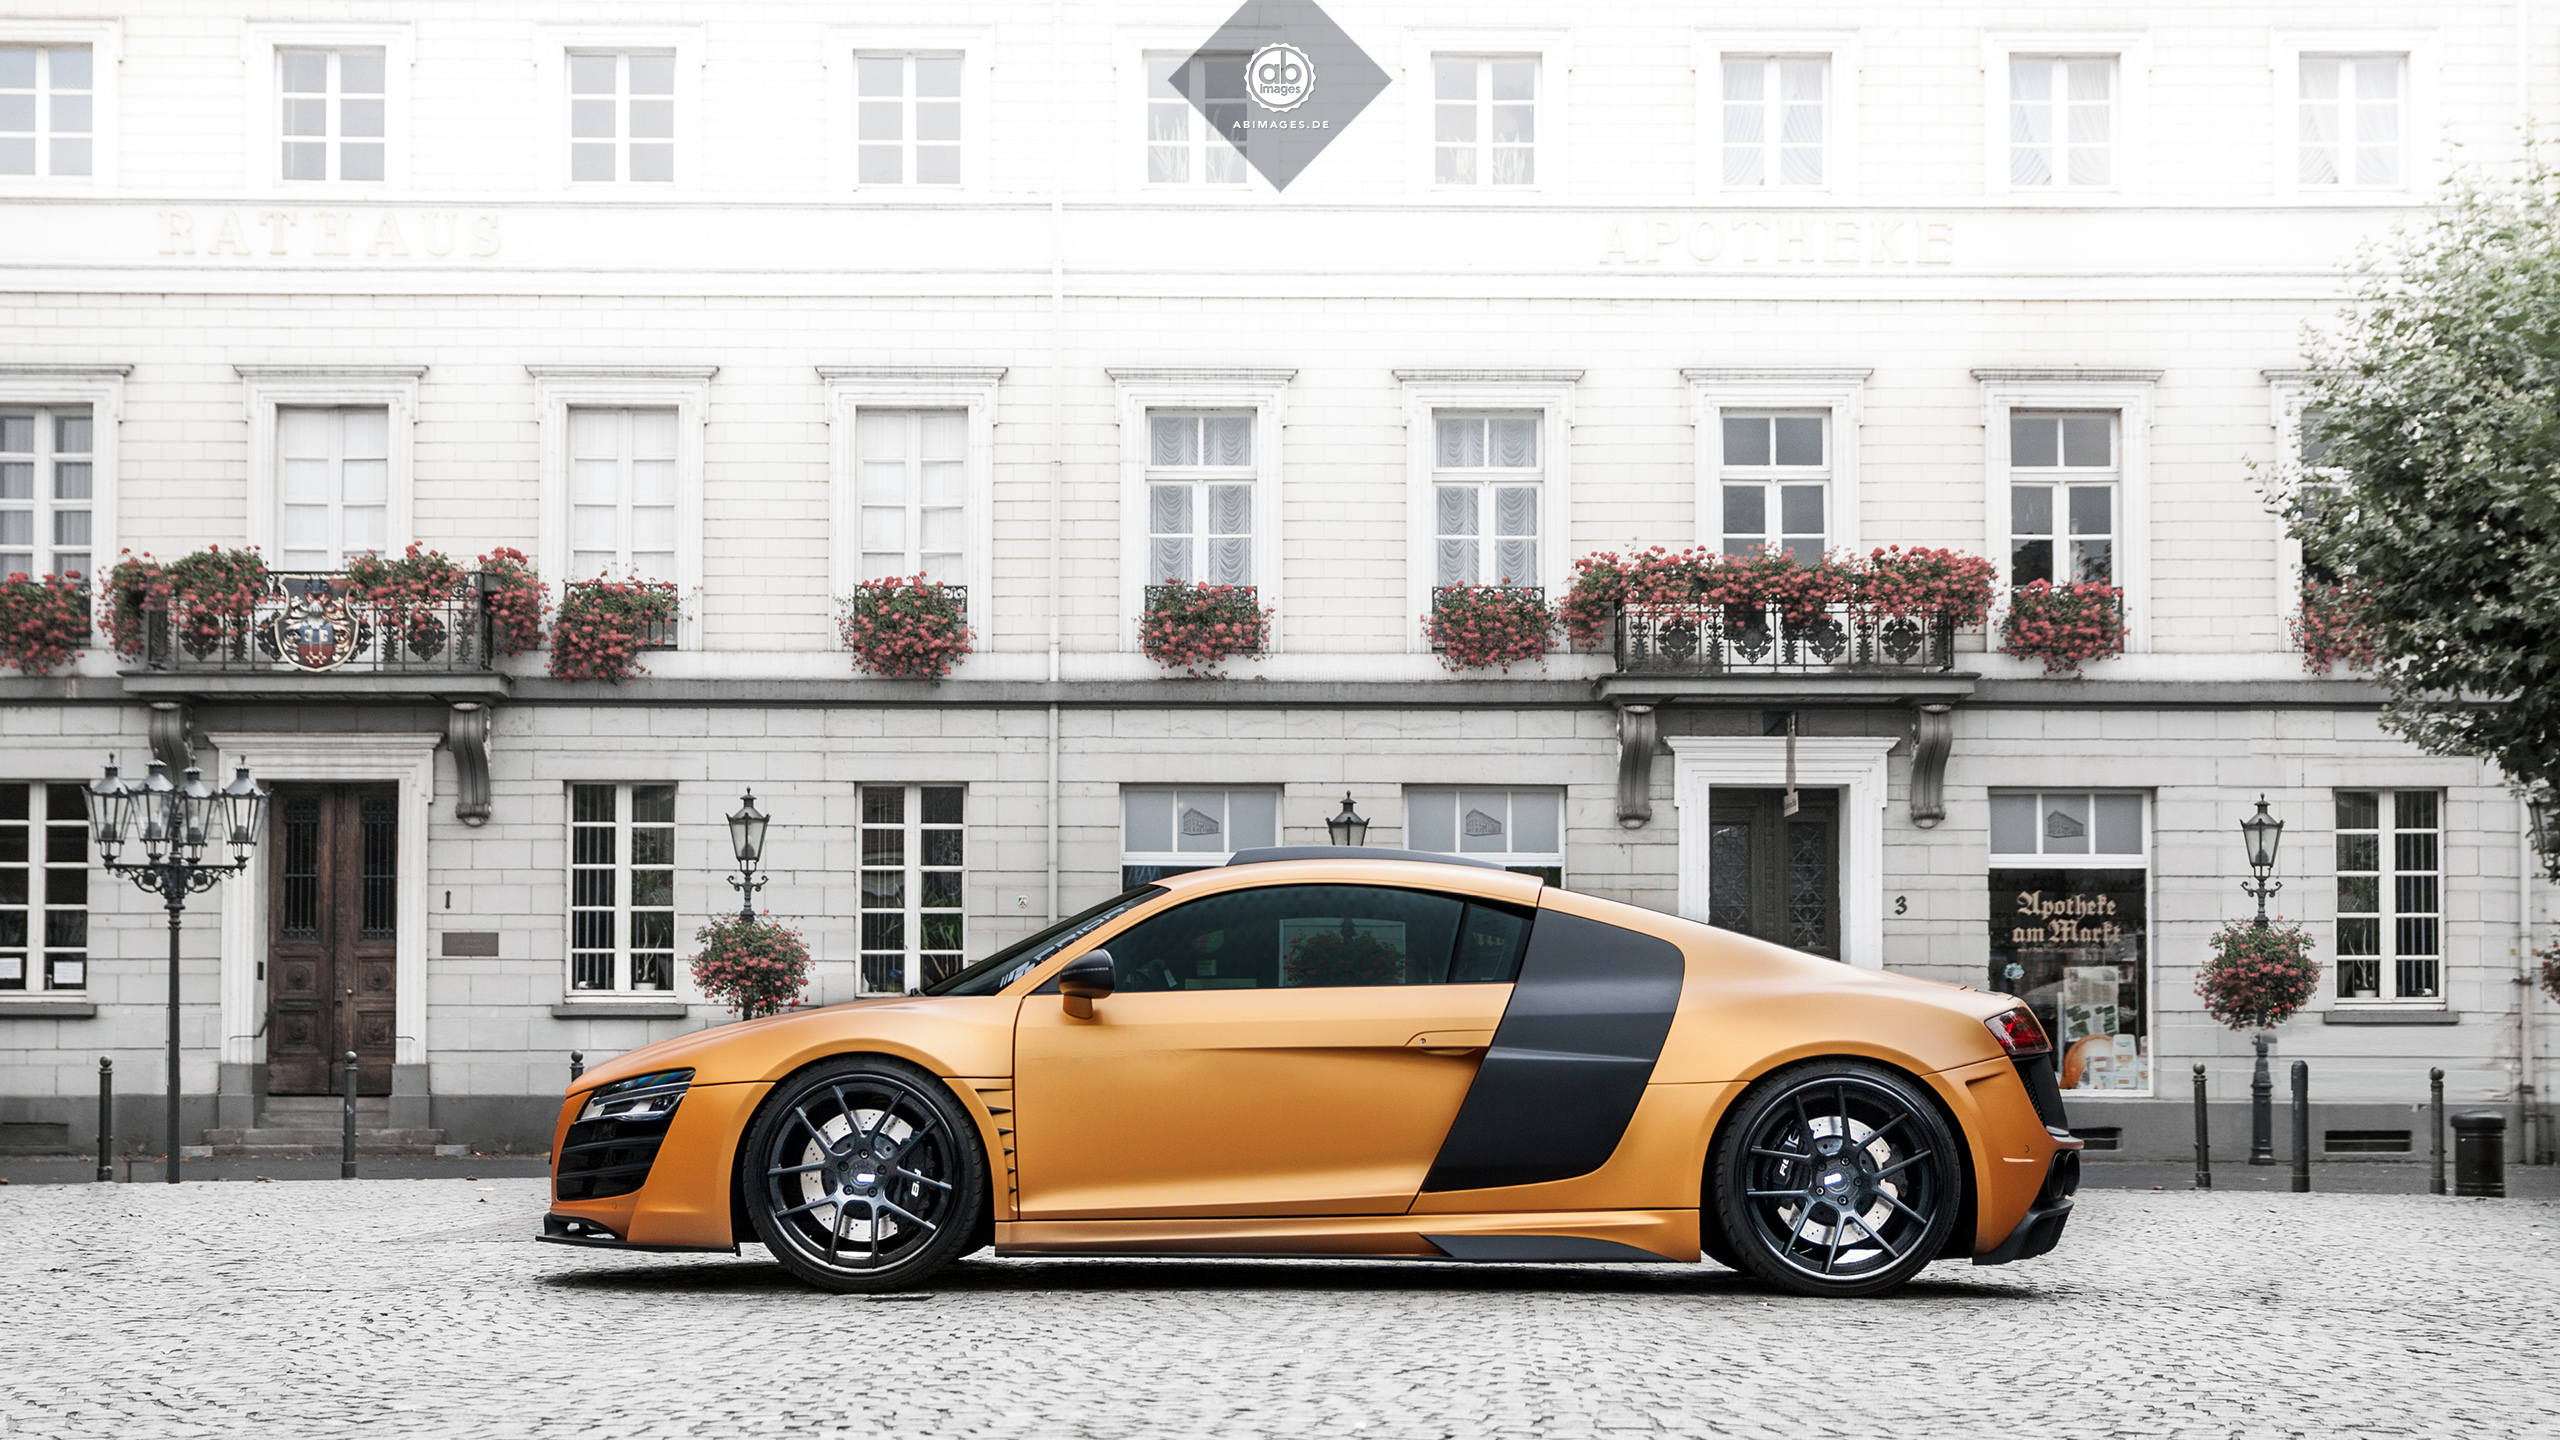 AB.IMAGES - DESKTOP WALLPAPER - AUDI R8 PRIORDESIGN ADV1